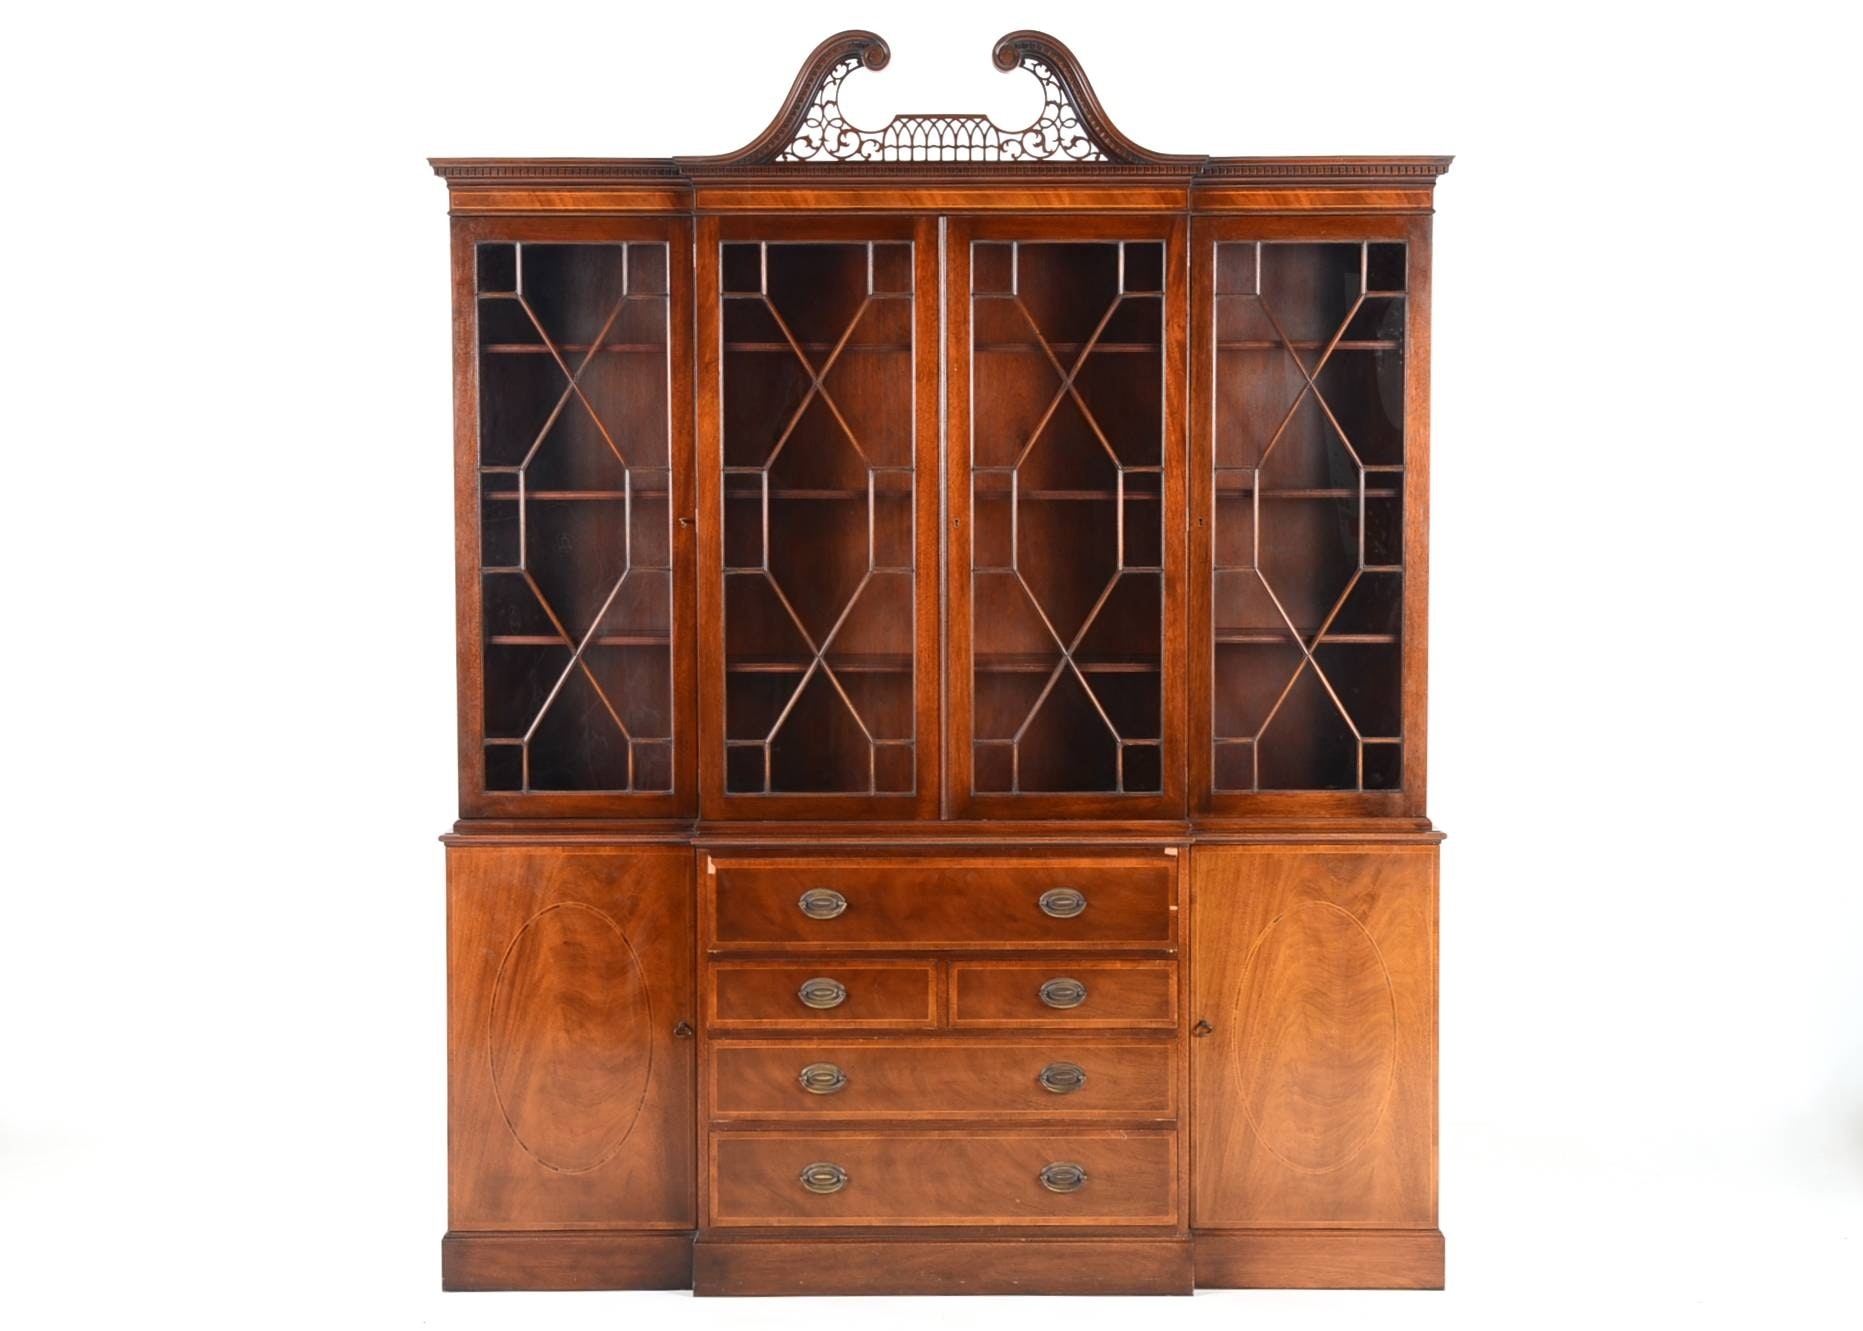 mixed veneer breakfront china cabinet - Antique Furniture For Sale